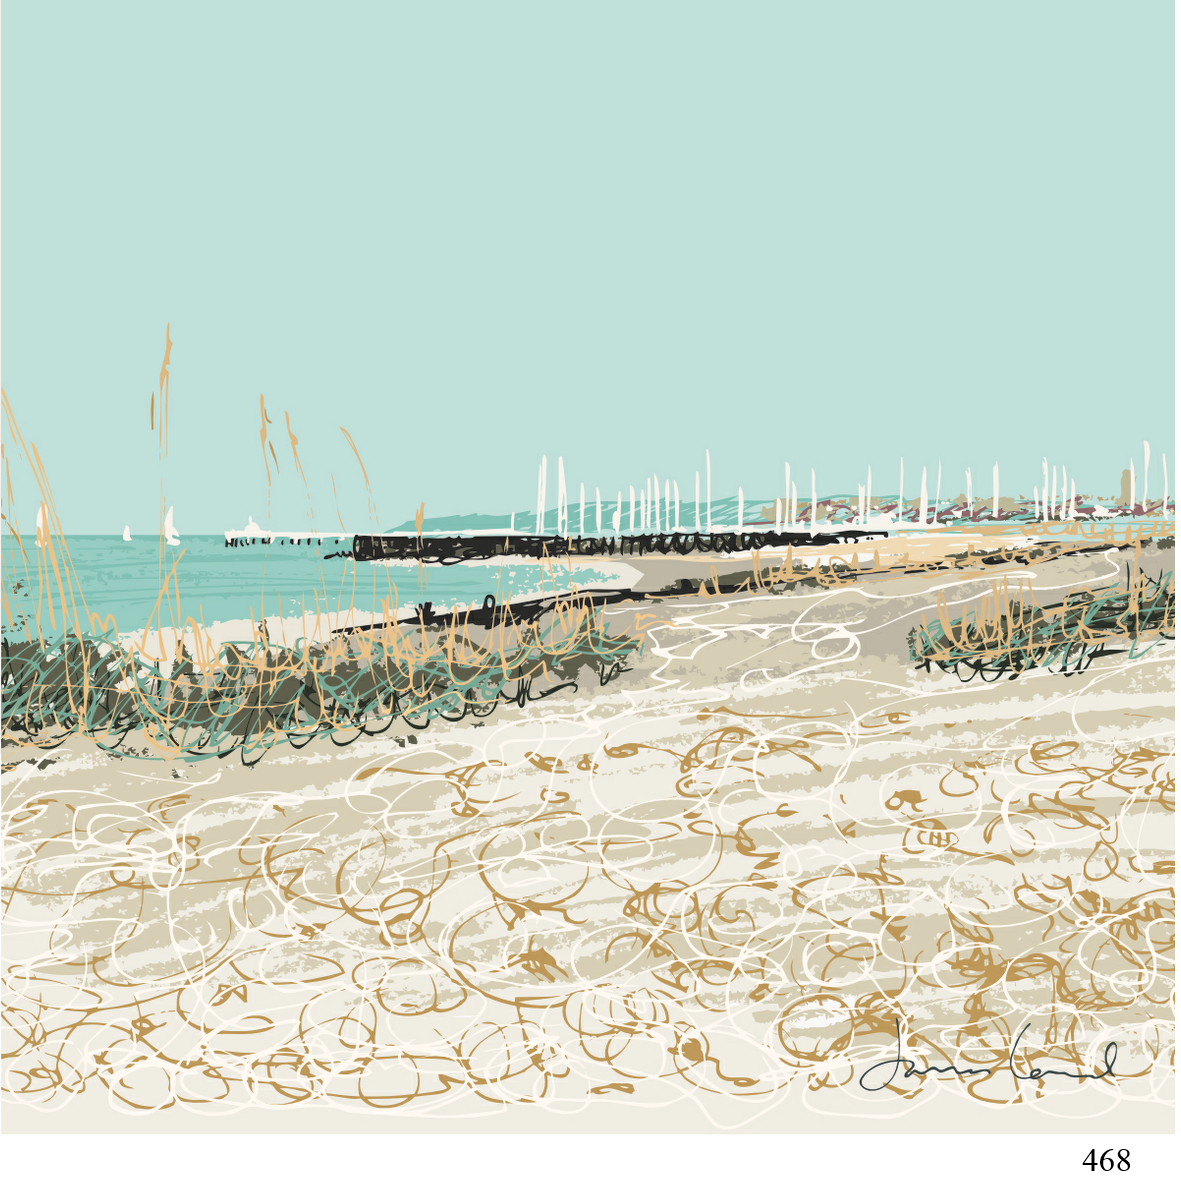 468 Sandhard Beach  james lord arty cards 6x6.jpg